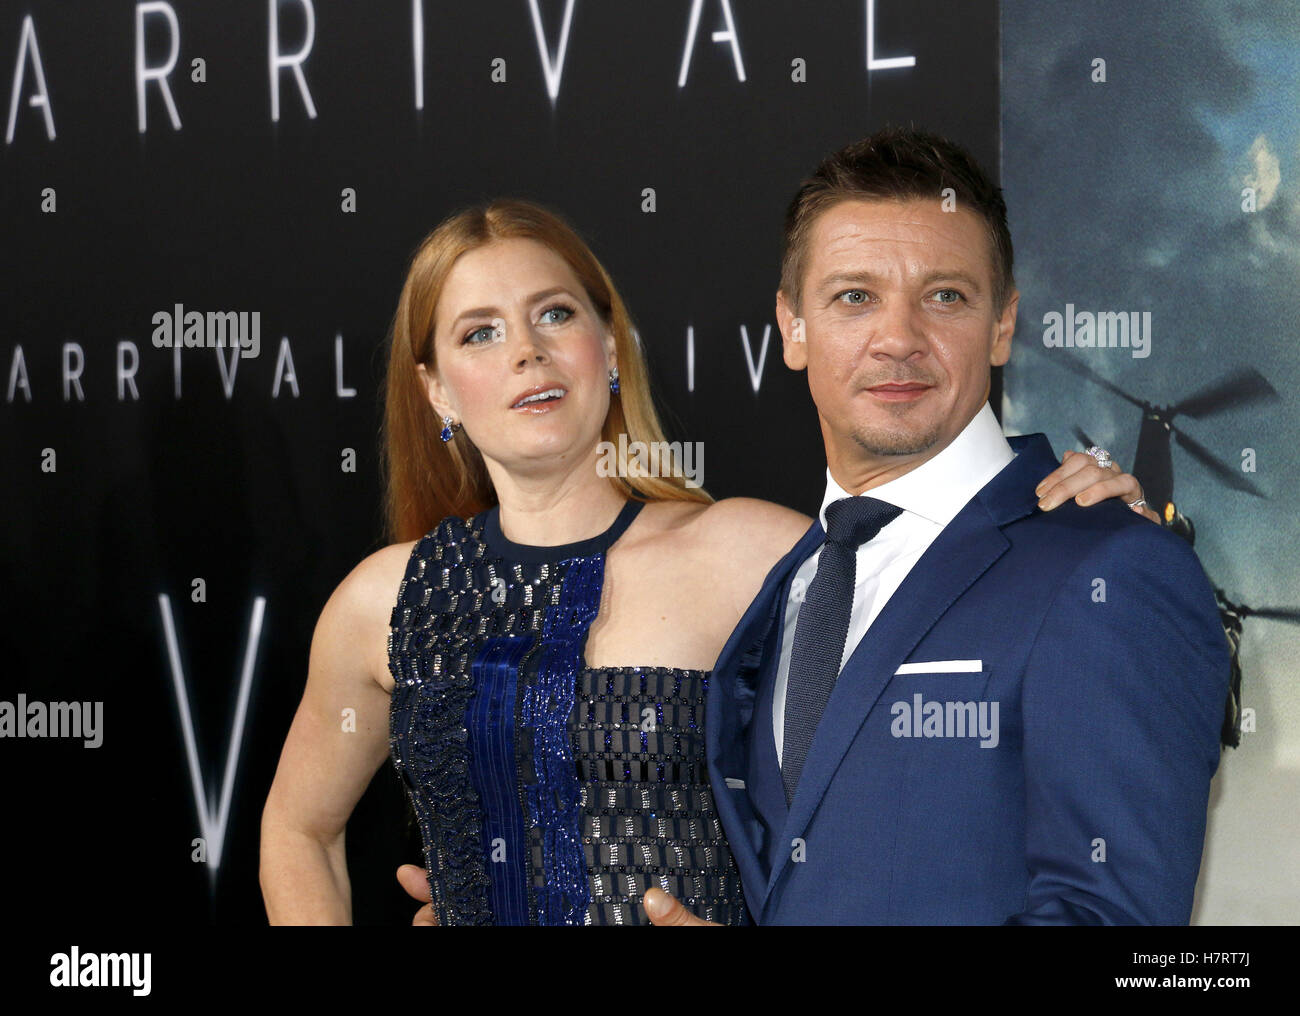 Westwood, USA. 6th Nov, 2016. Jeremy Renner and Amy Adams at the Los Angeles premiere of 'Arrival' held - Stock Image